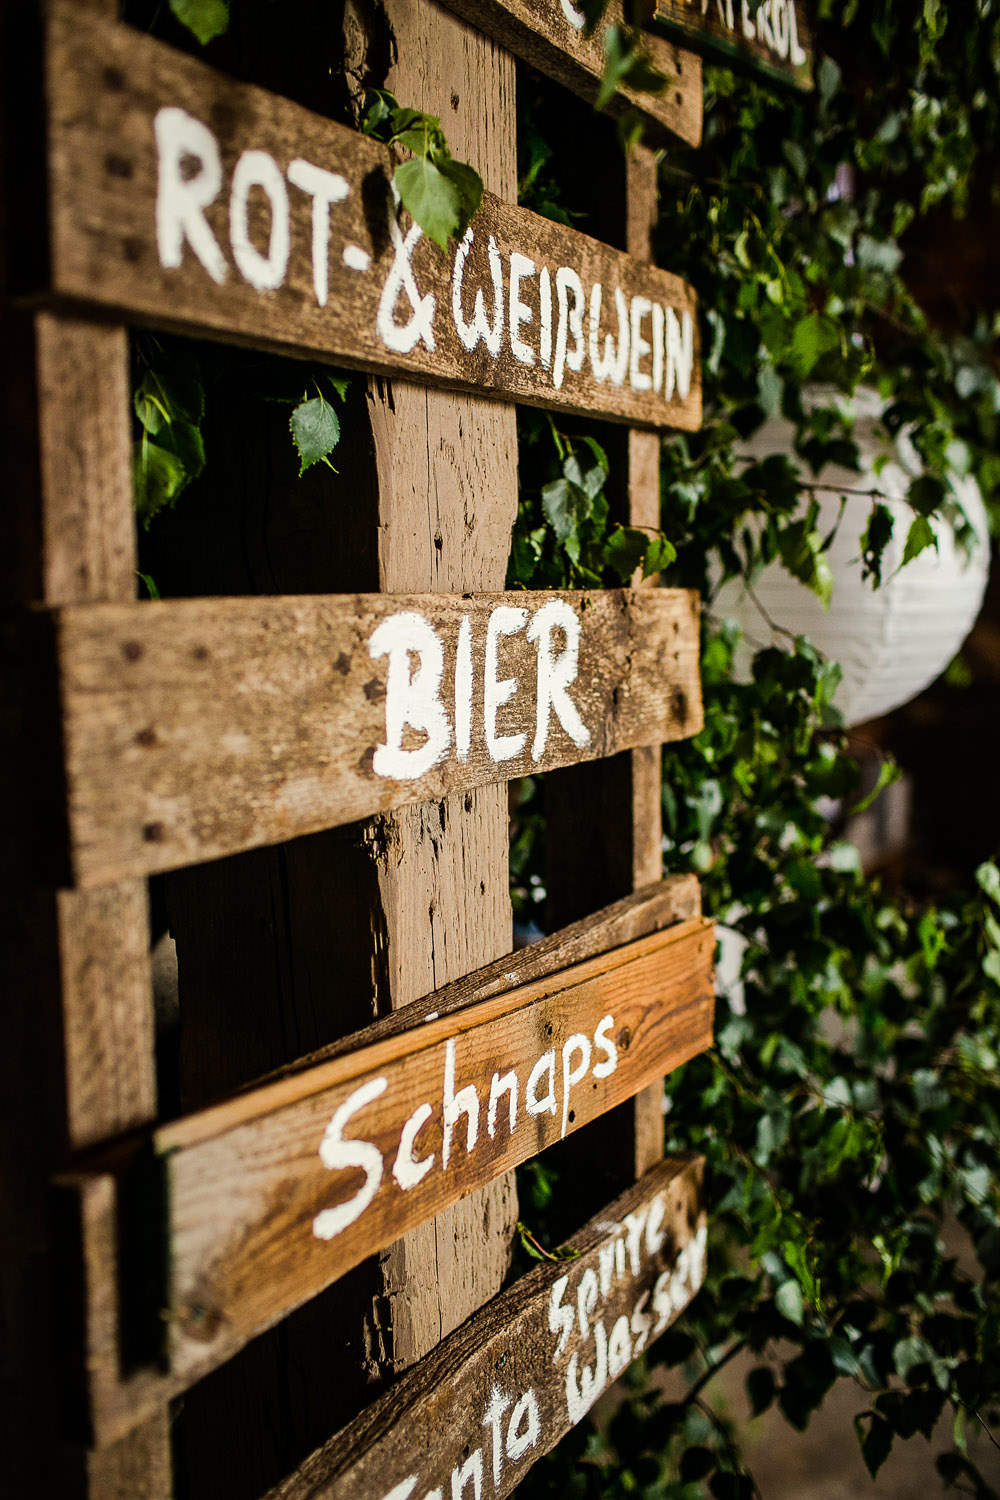 hochzeit diy getr nke schild selbermachen paletten bar schild. Black Bedroom Furniture Sets. Home Design Ideas